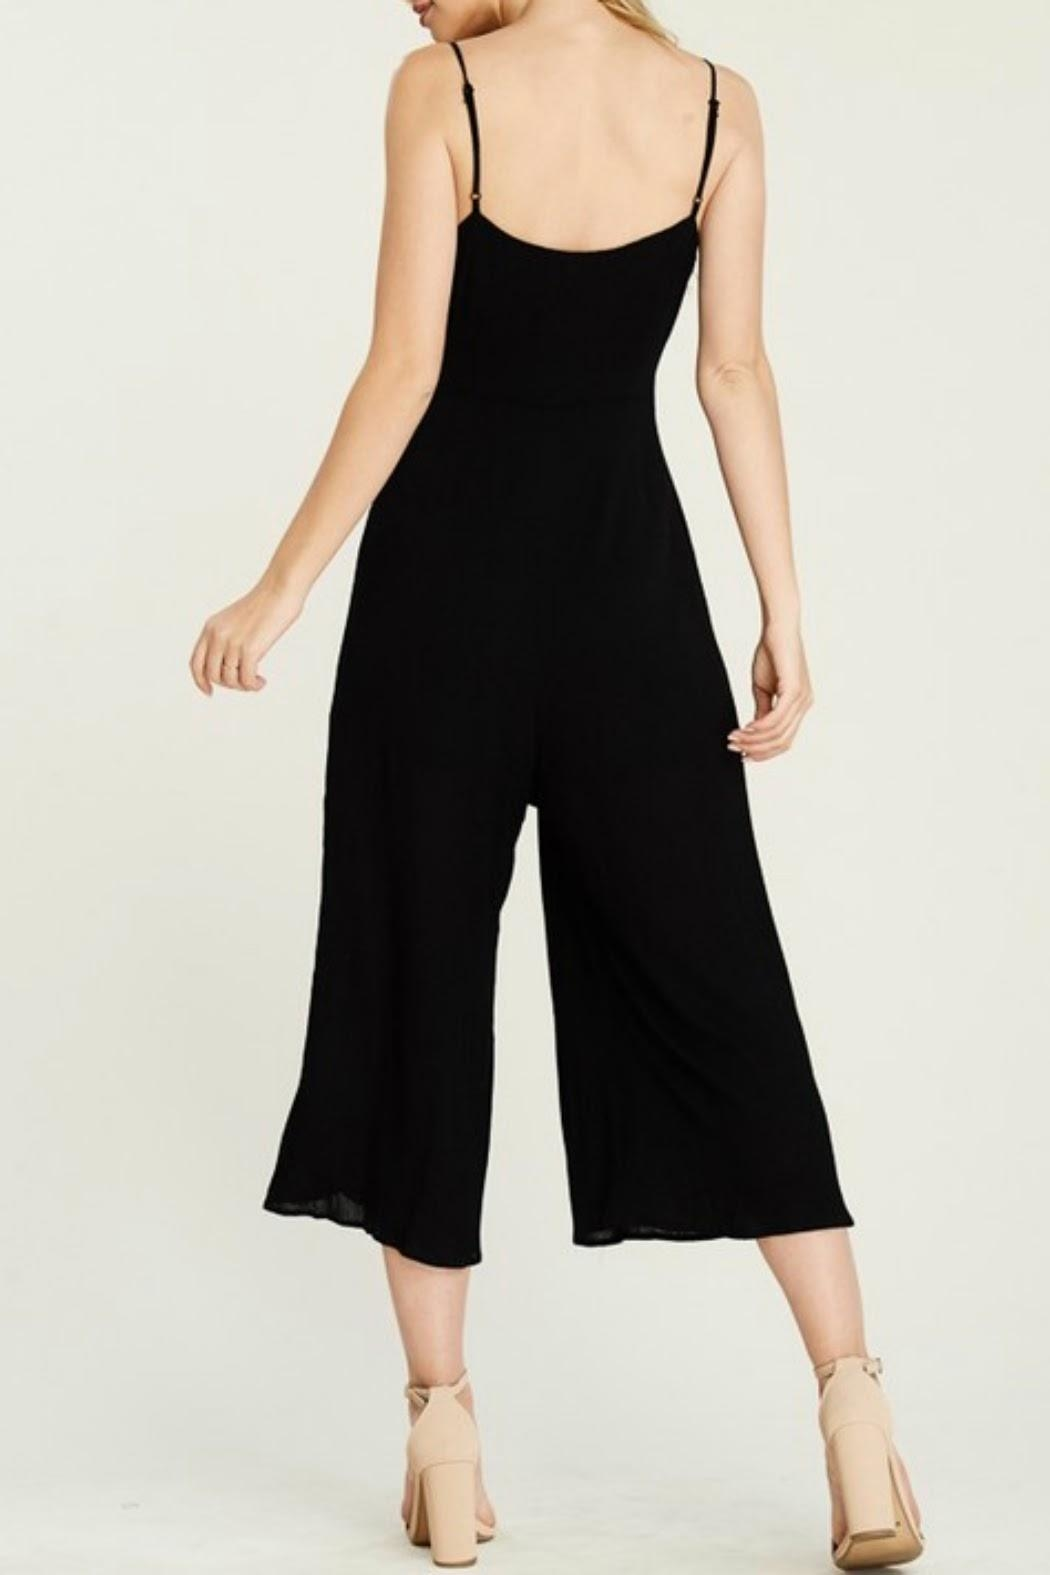 Classic Trendz Boutique Cropped Black Jumpsuit - Side Cropped Image